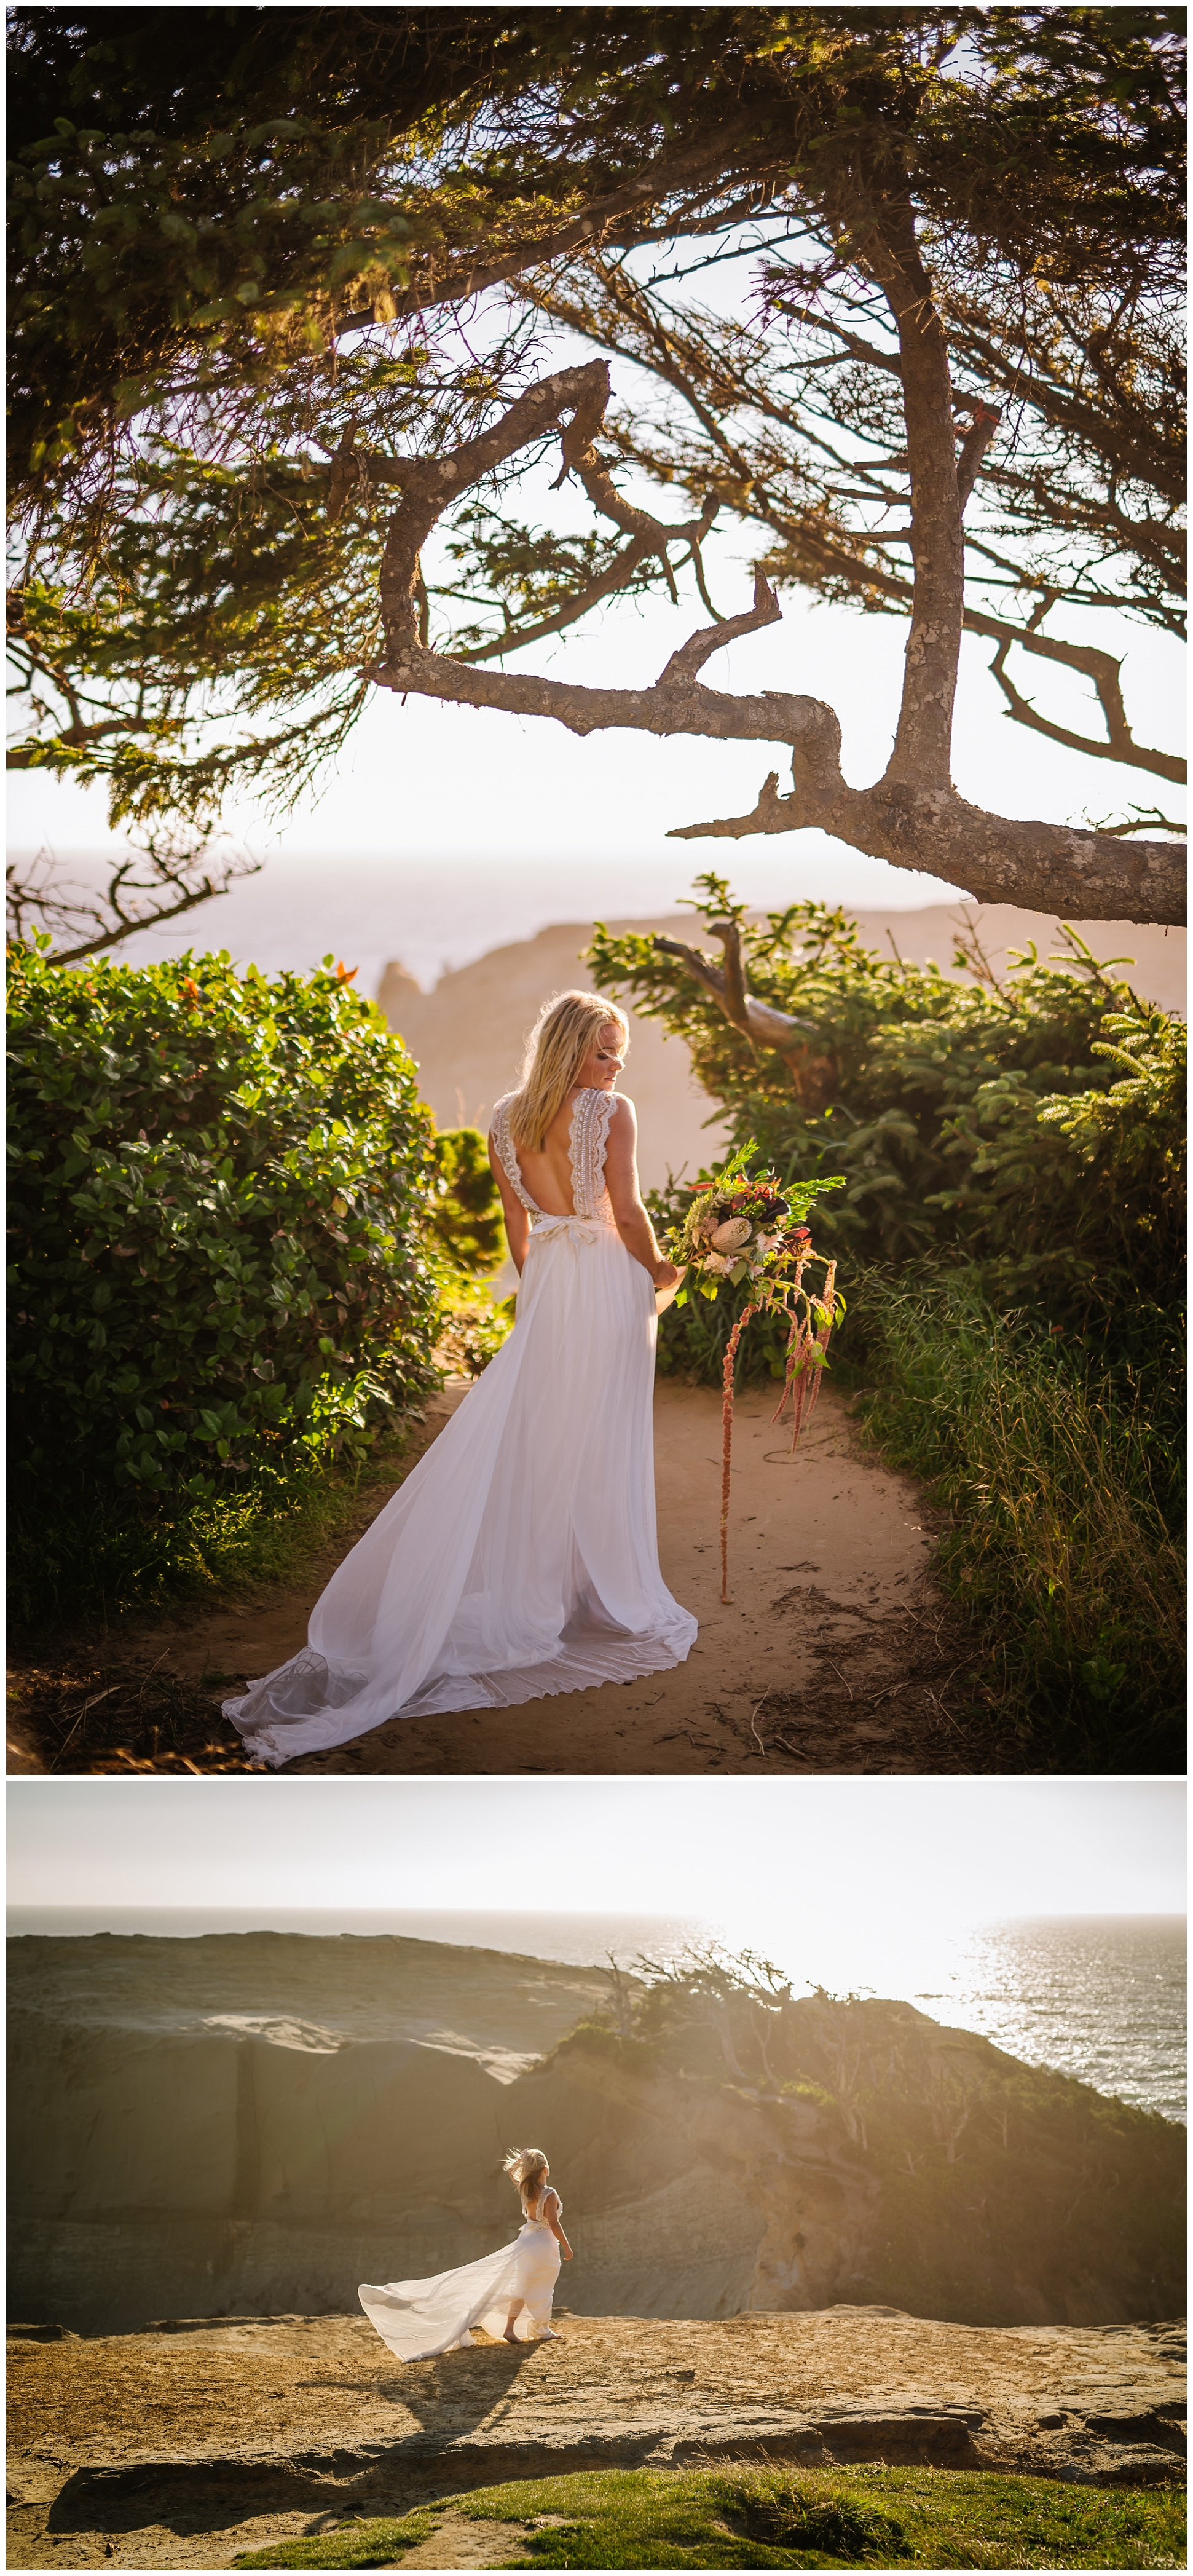 Cape-kiwanda-bridal-portrait-destination-wedding-photographer_0026.jpg